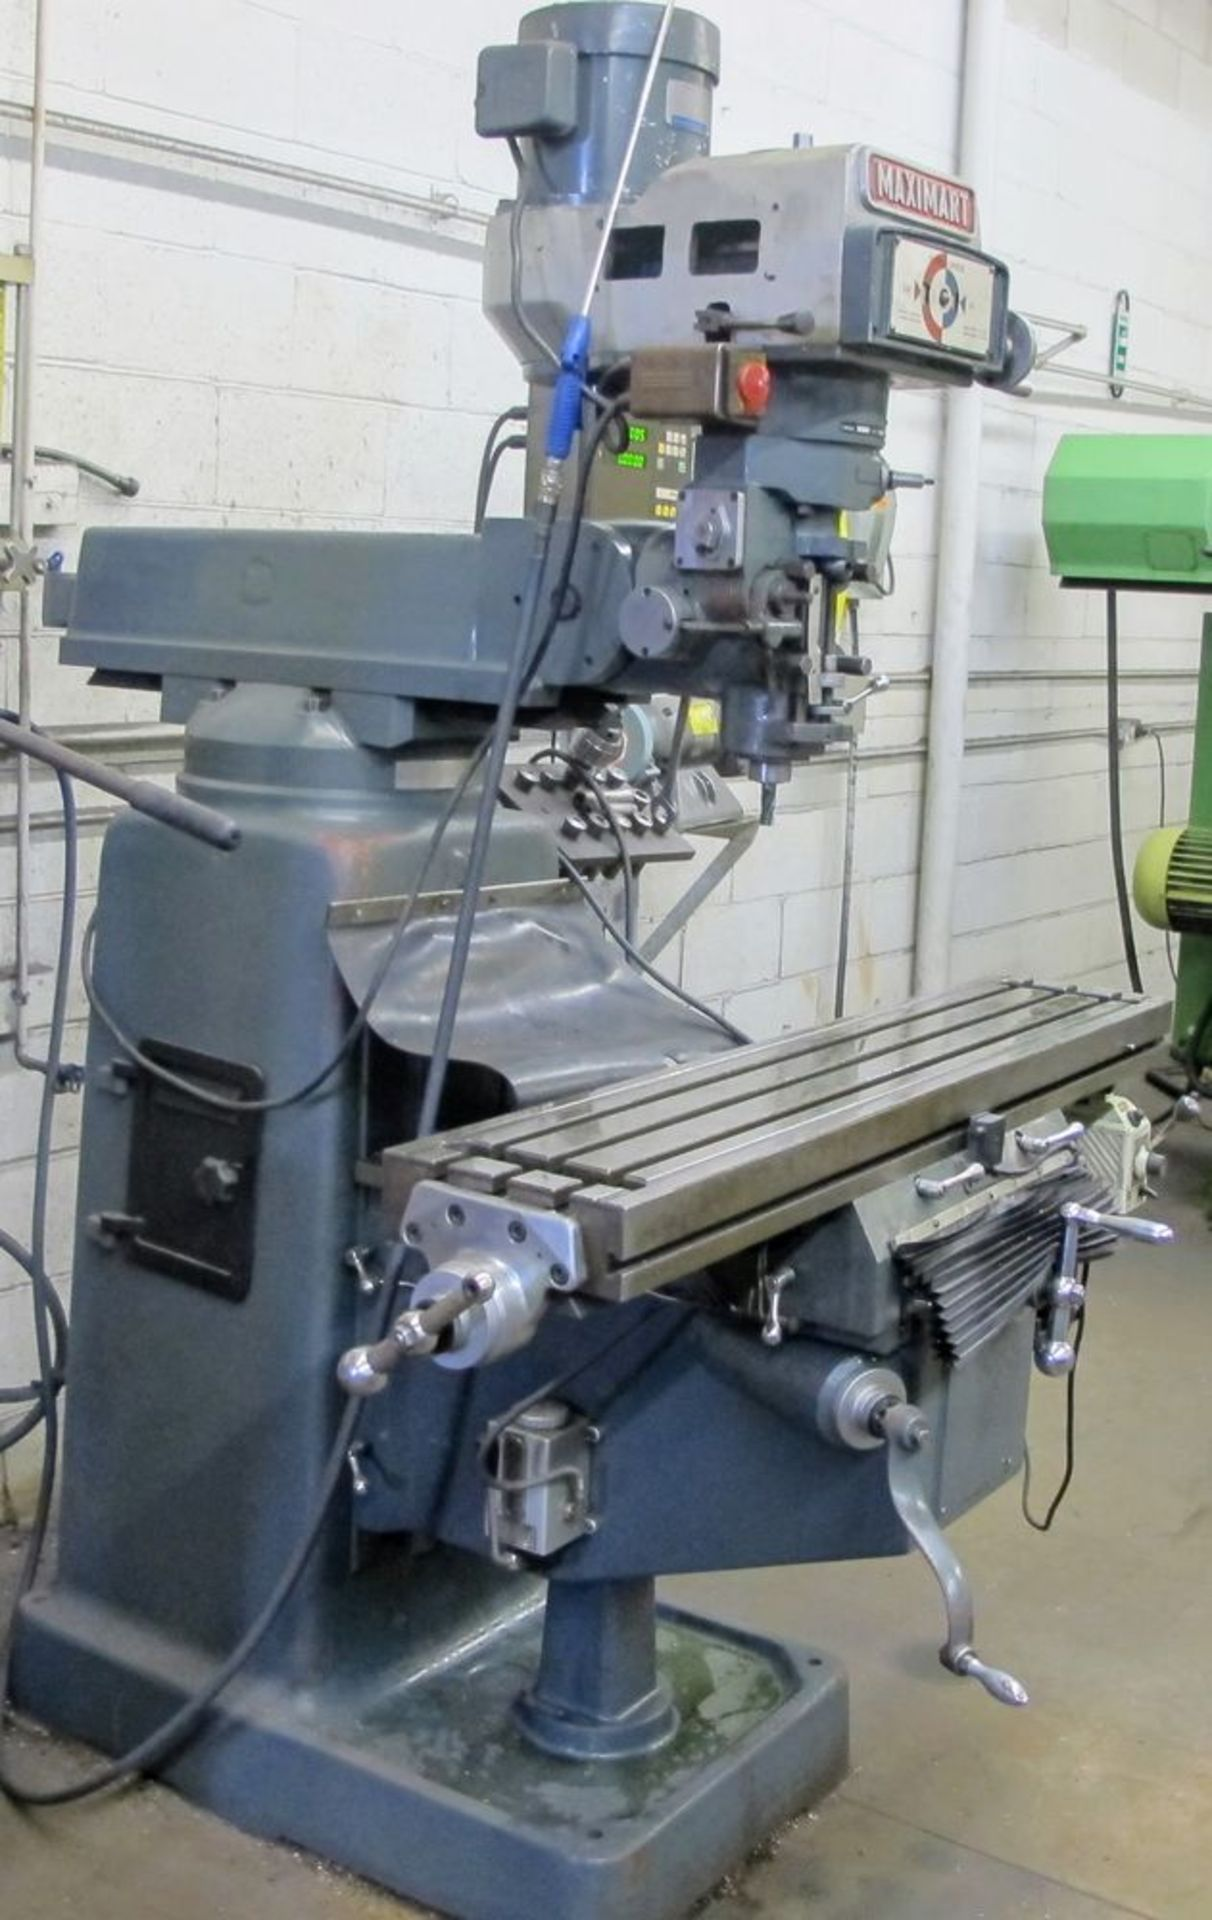 MAXIMART 3 HP VERTICAL MILLING MACHINE, MODEL S-3VS, S/N 95772, FAGOR 2 AXIS DRO, COLLET SET W/ - Image 6 of 7